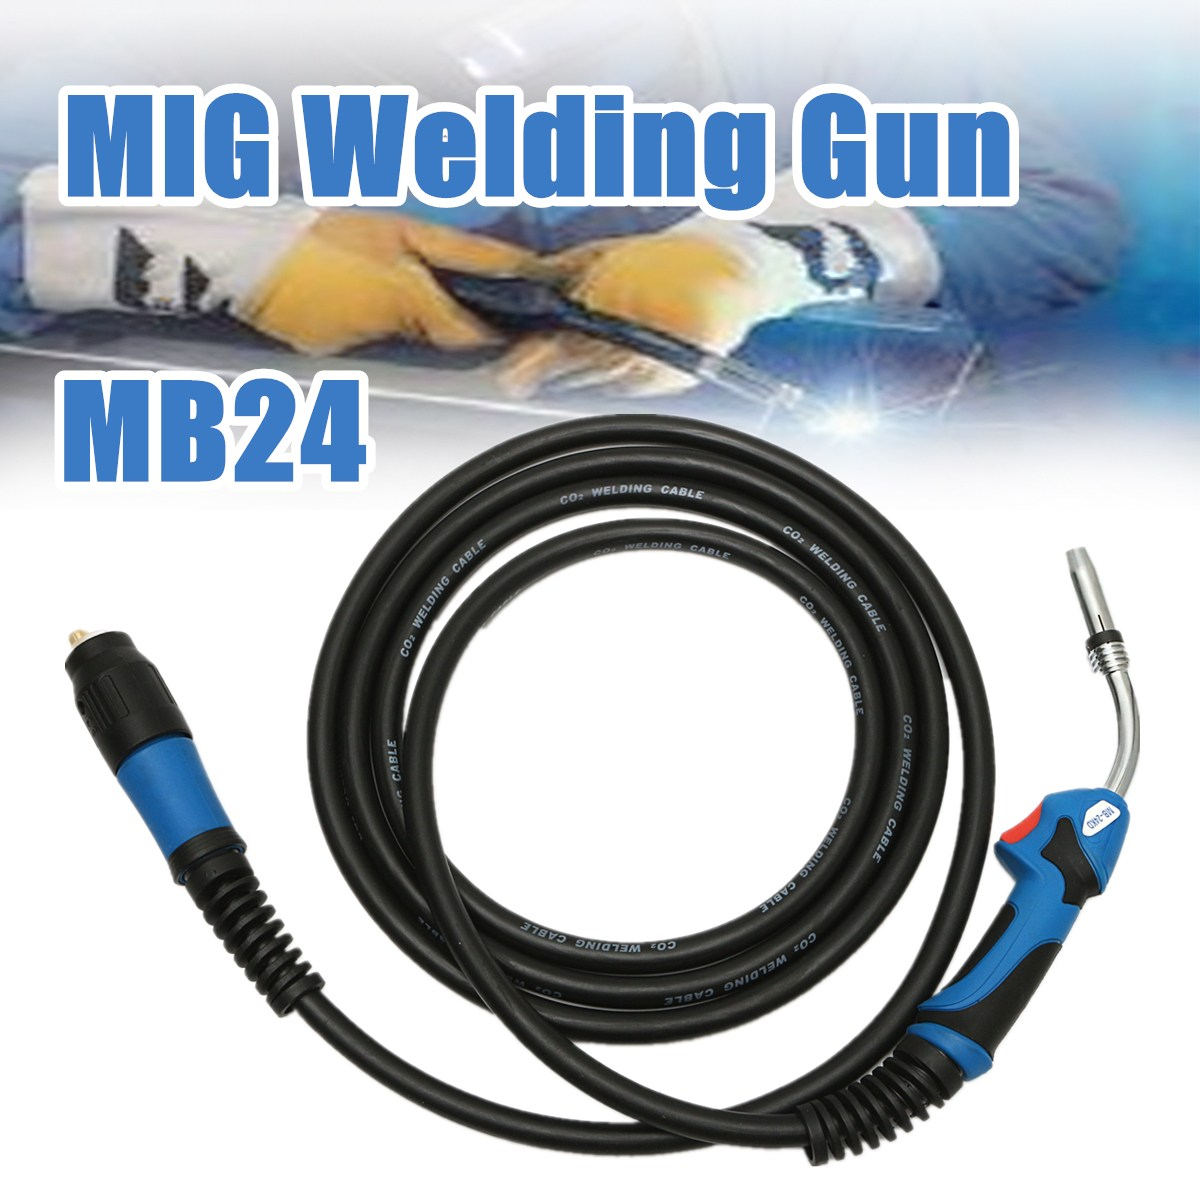 все цены на High Quality MB24 MIG Welding Gun-Torch with 5 Meter Length Lead Electric Welder Torch Stinger Parts